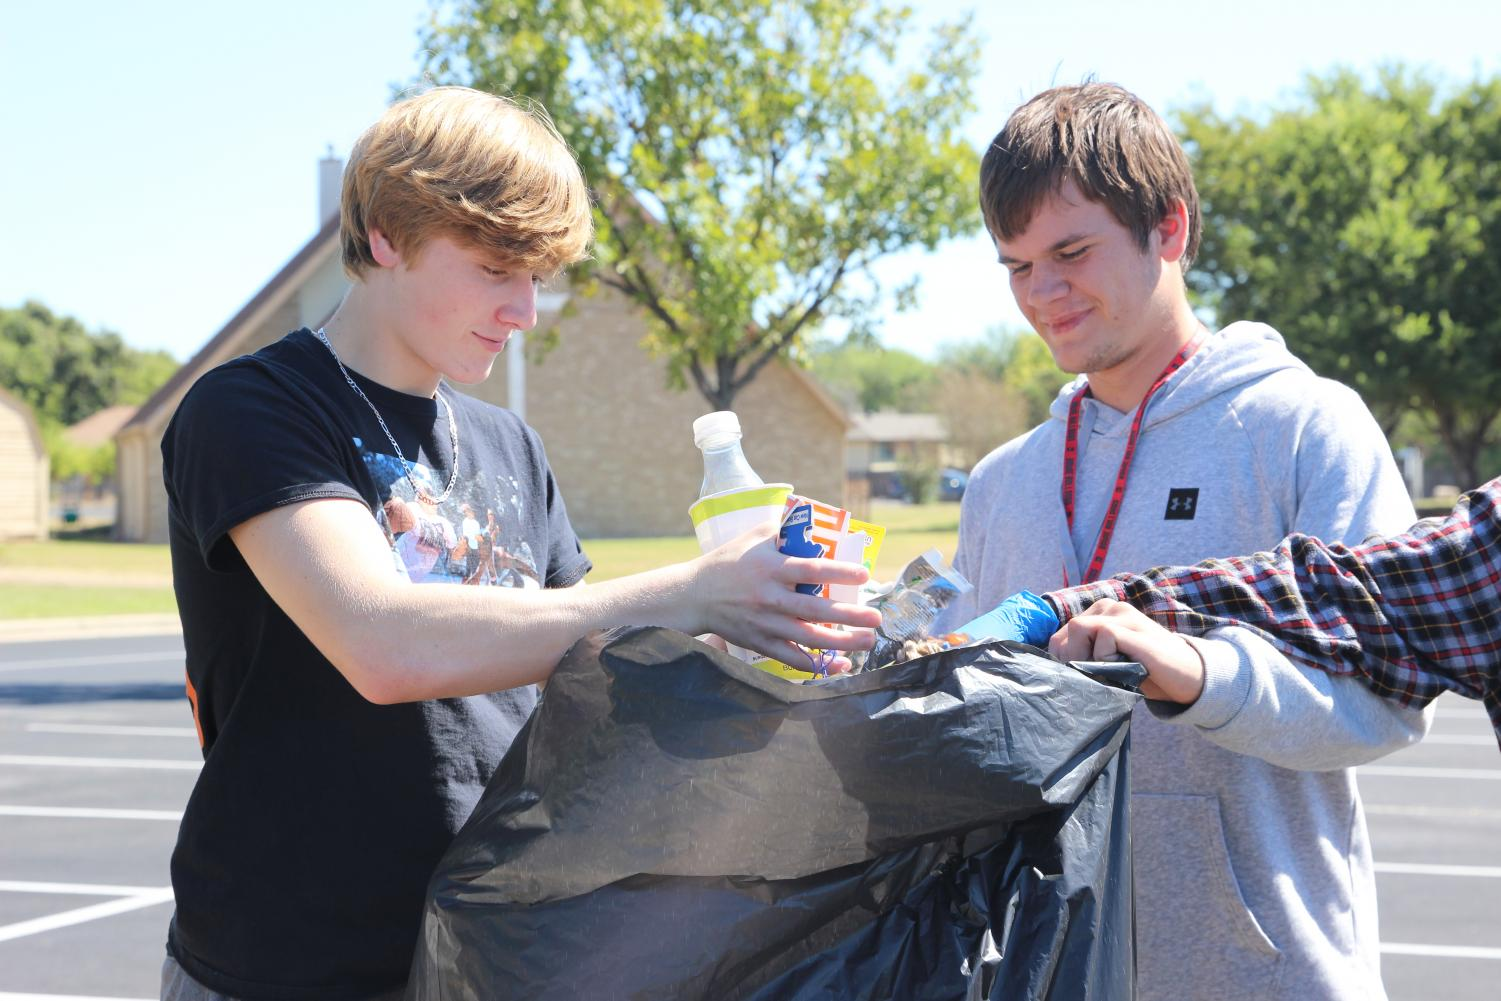 CLEANING UP FOR GOOD: Tye Frnka and Evan Mallett discard litter from the West Oak Woods Baptist Church parking lot with fellow club members. Various clubs have been cleaning up the parking lot for the past month in order to maintain parking lot privileges.